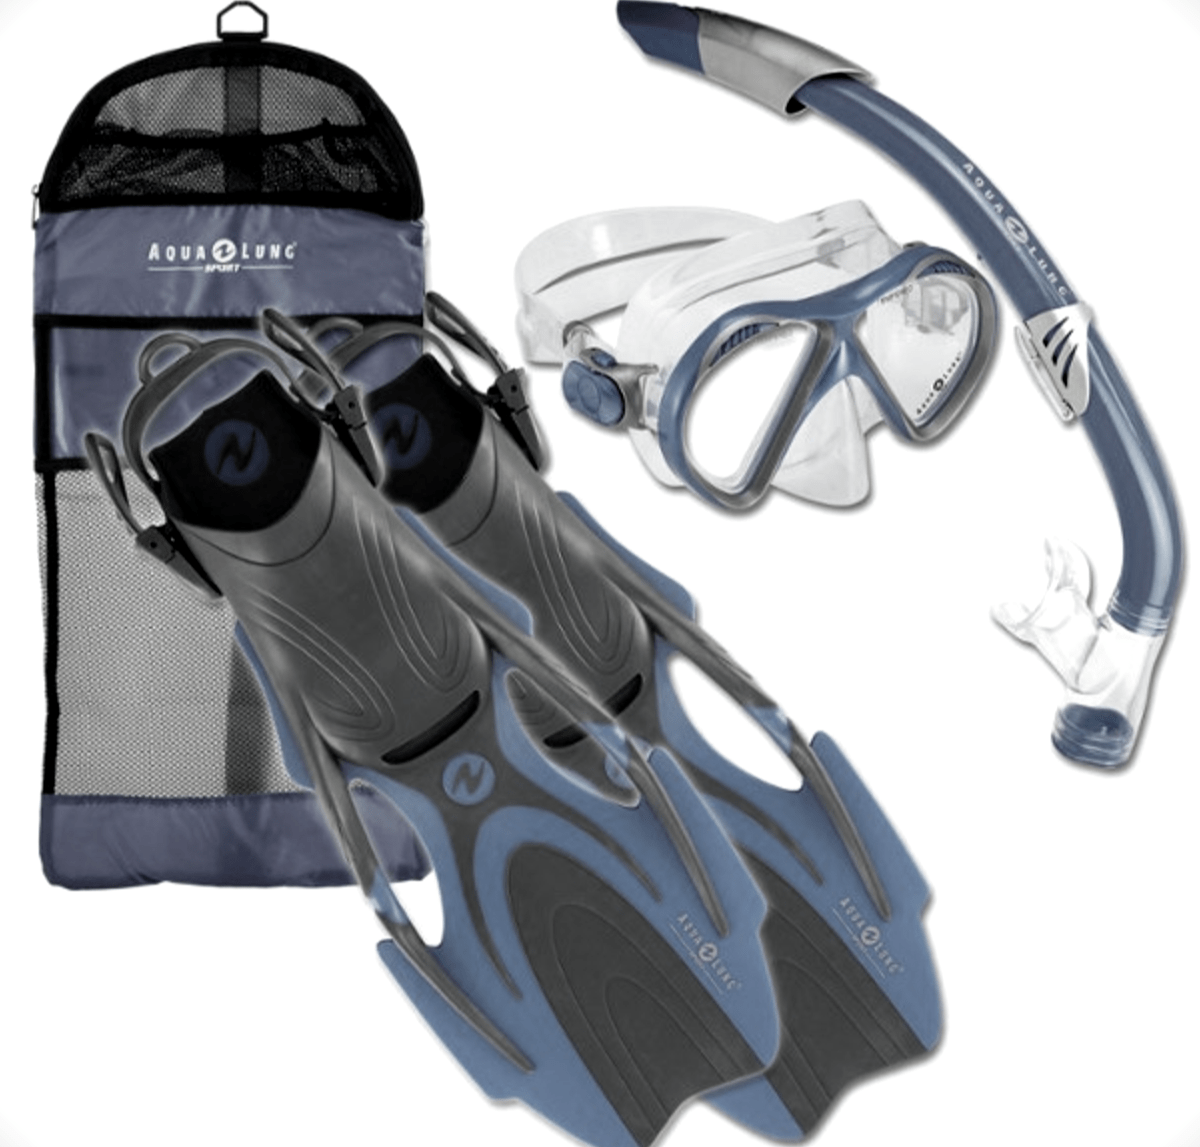 Aqua Lung Snorkel Set Review Snorkels And Fins